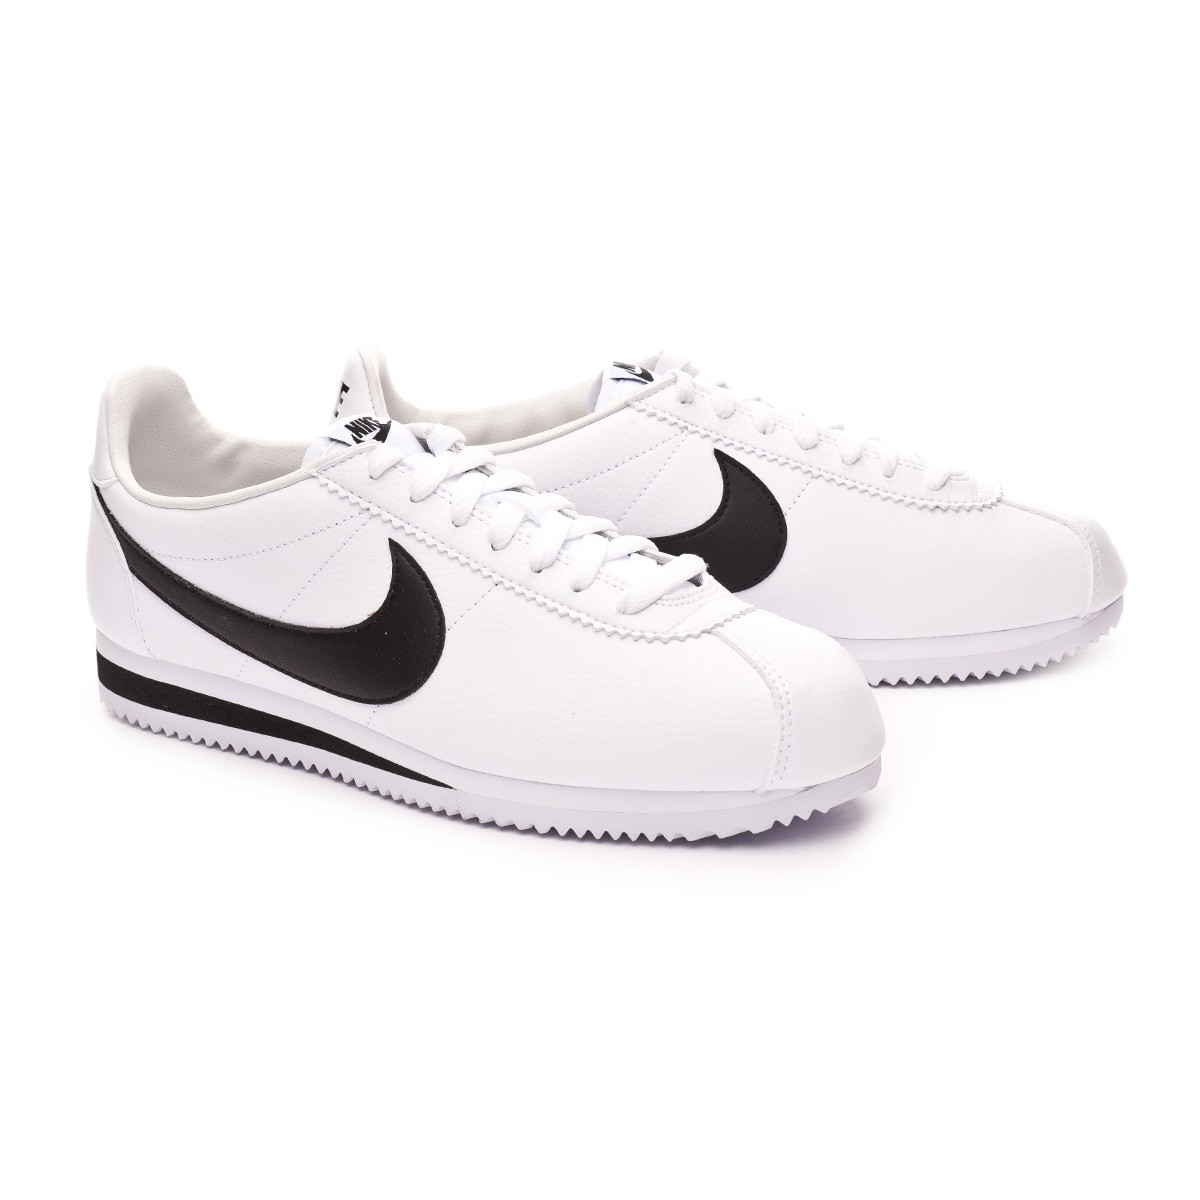 33c3aca353d Trainers Nike Classic Cortez Leather 2019 White-Black - Tienda de fútbol  Fútbol Emotion